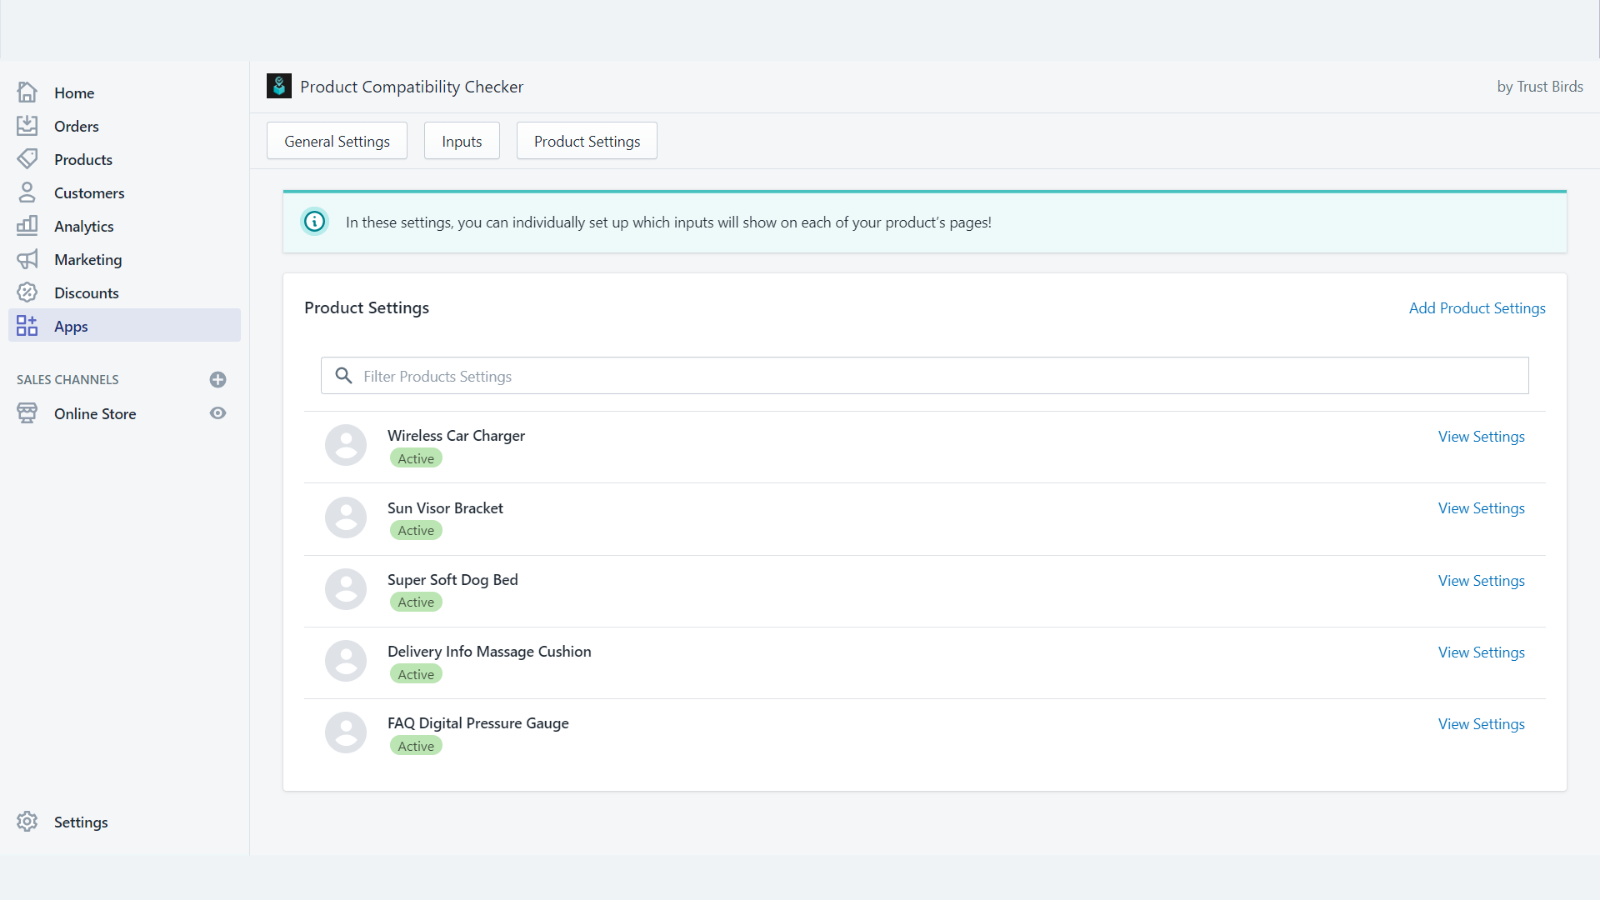 Product Compatibility Checker Product Settings Embedded